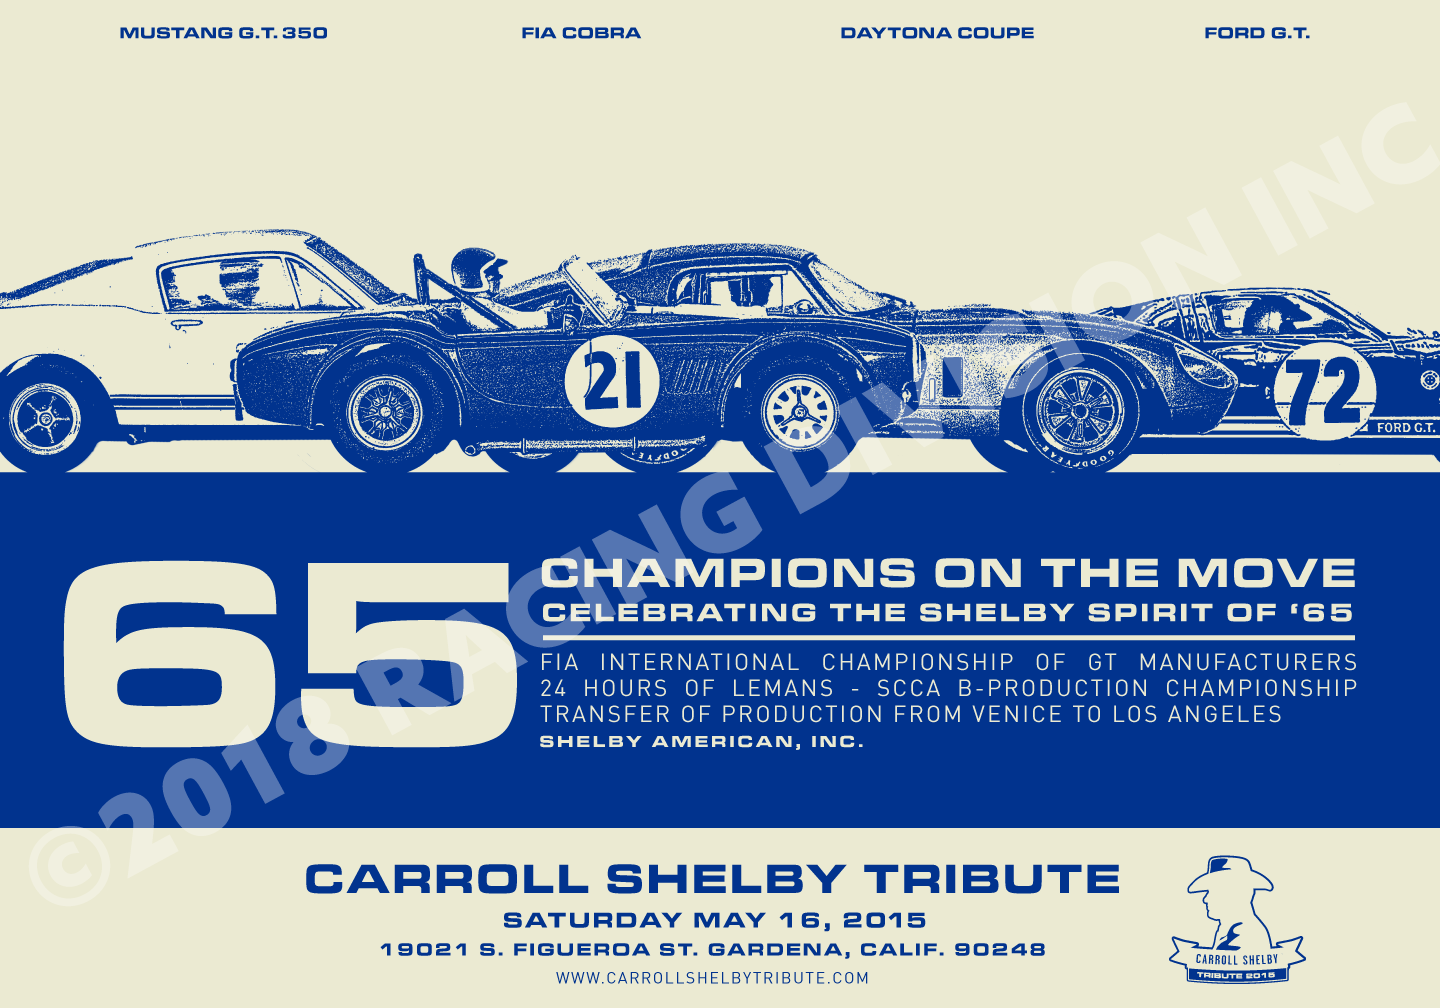 Image of 2015 CARROLL SHELBY TRIBUTE POSTER